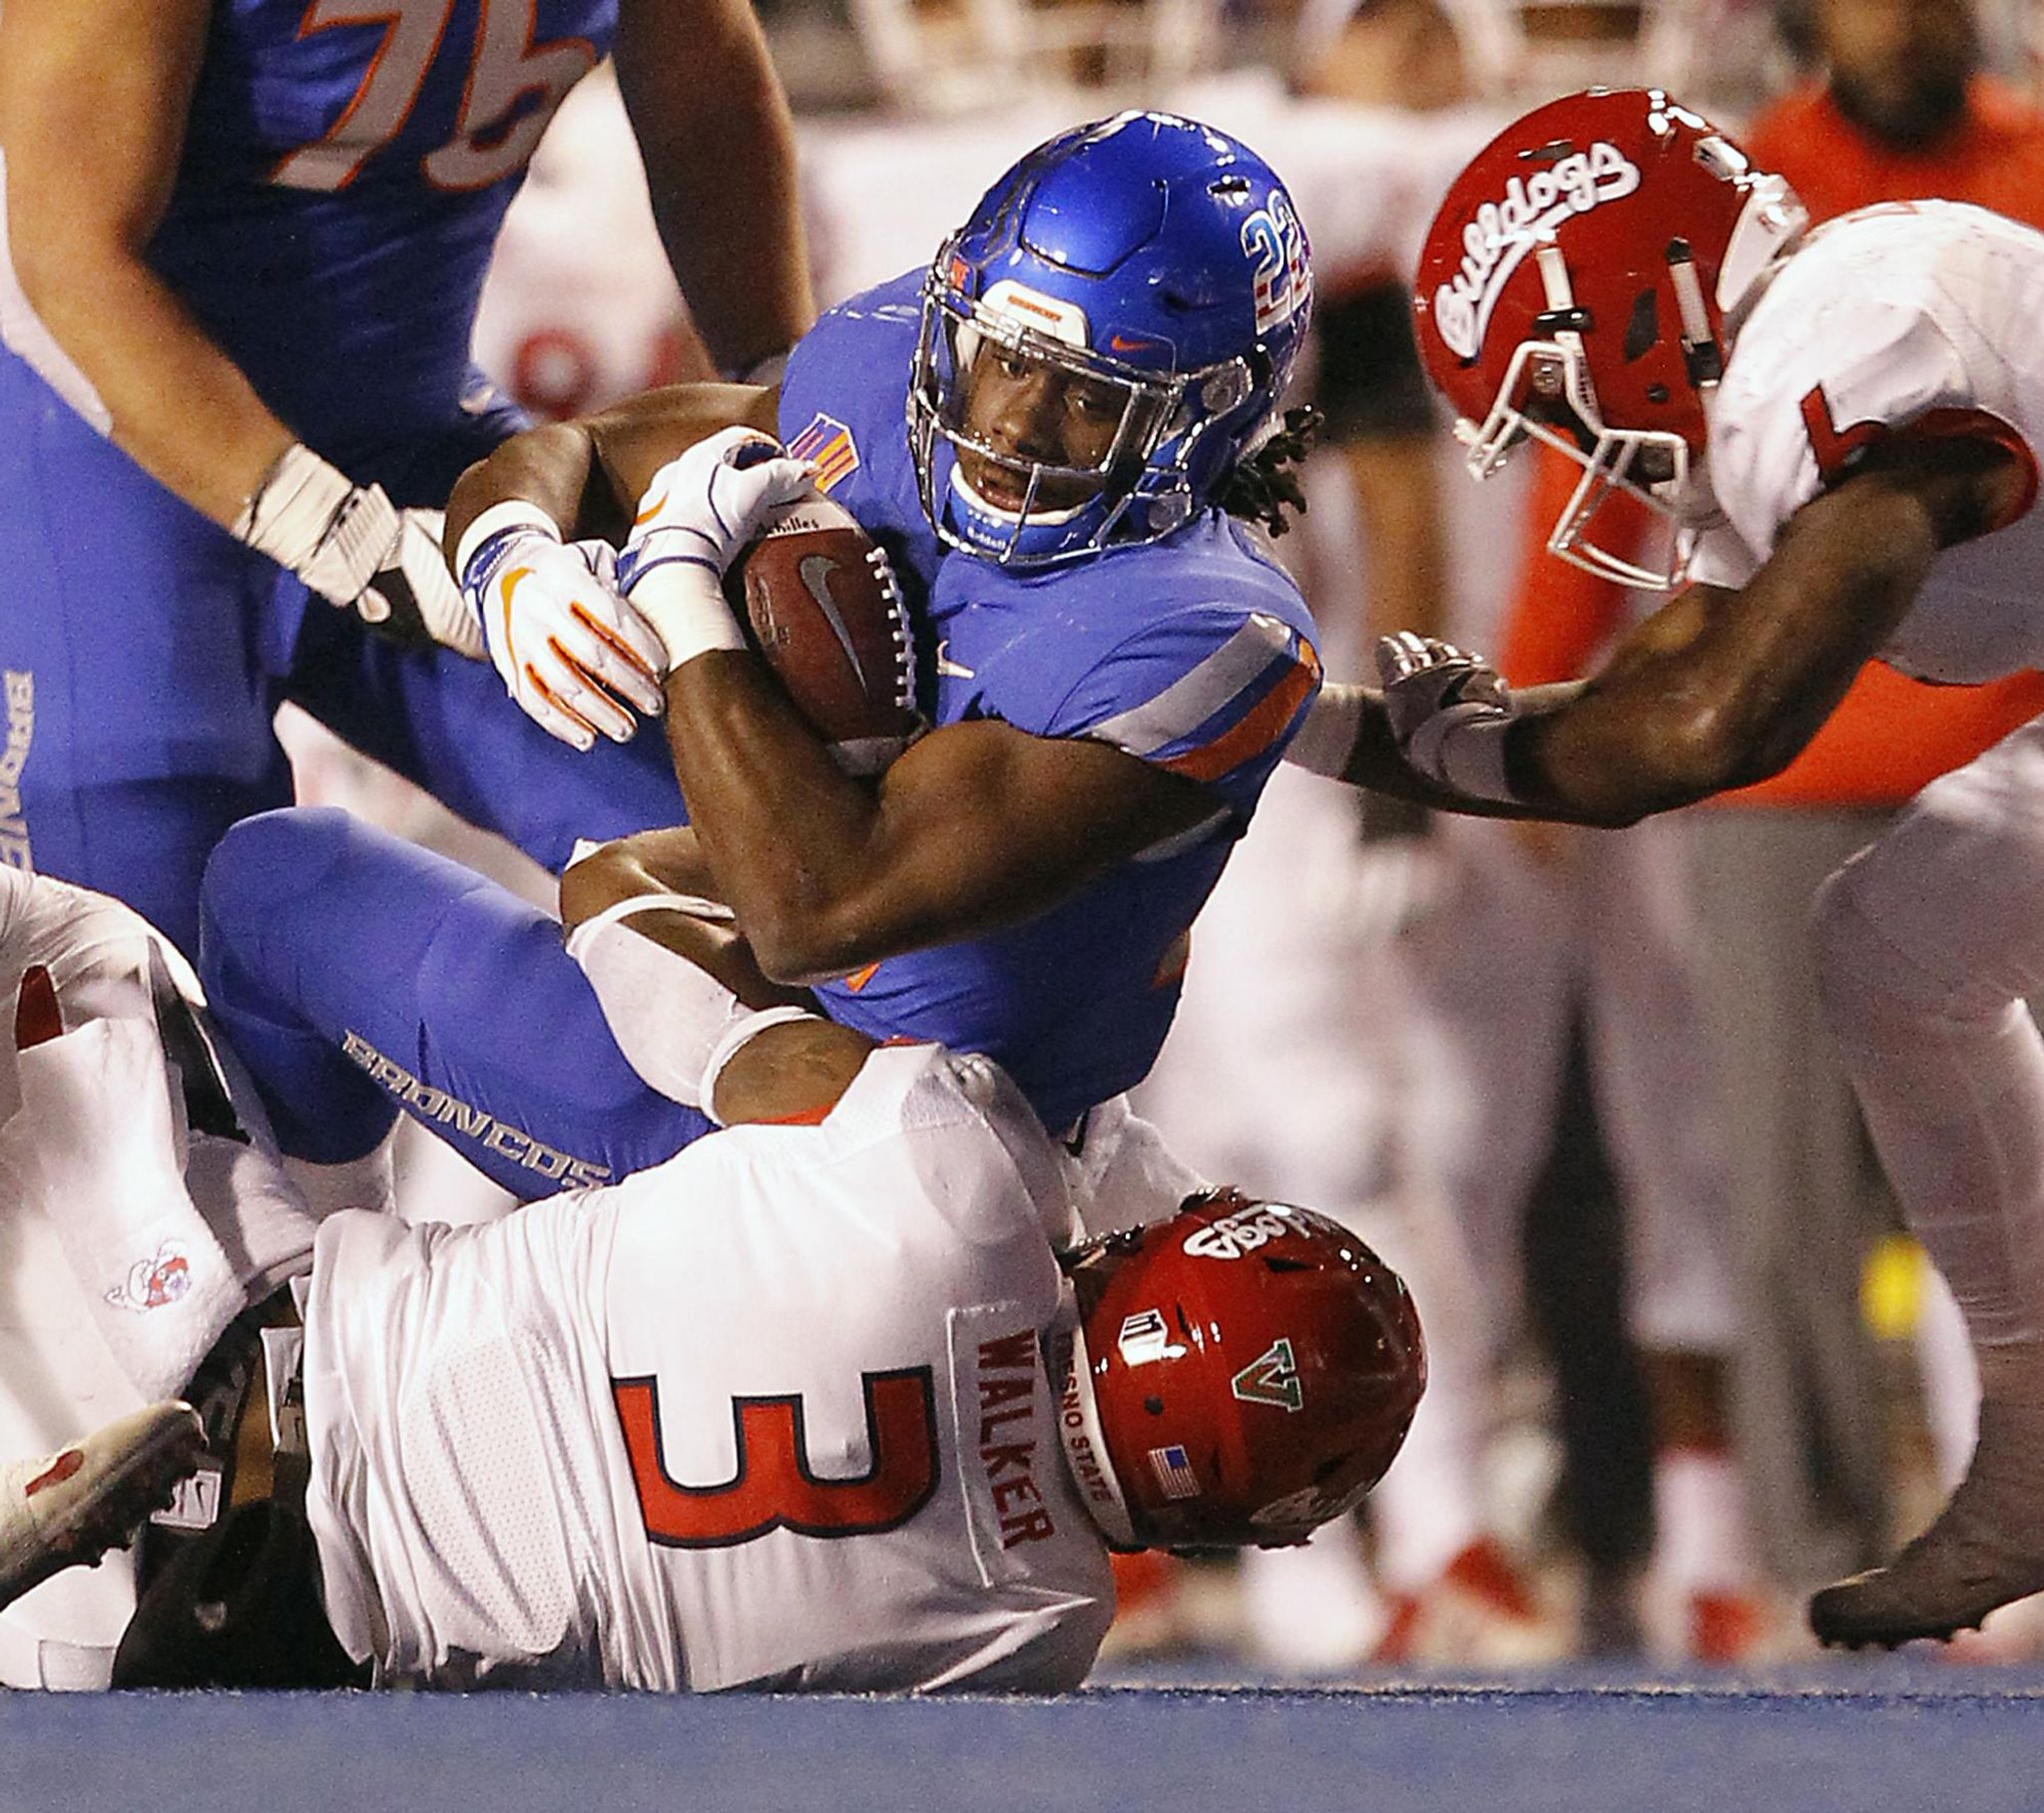 No looking ahead for No. 23 Boise State taking on New Mexico